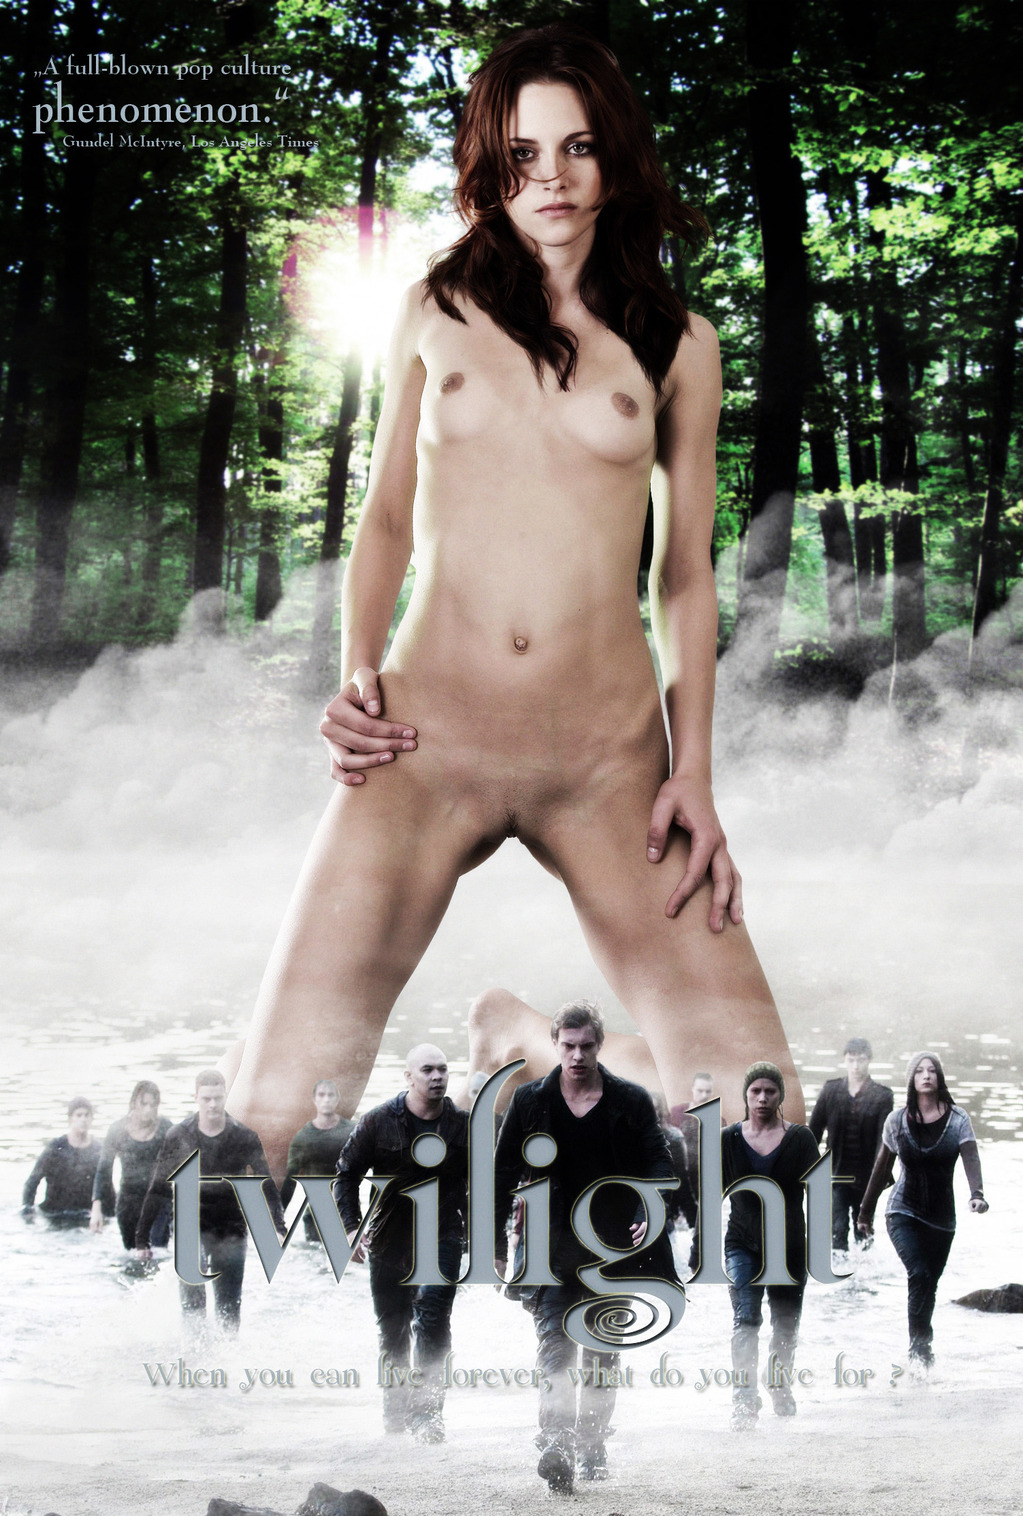 Self girl naked with twilight book